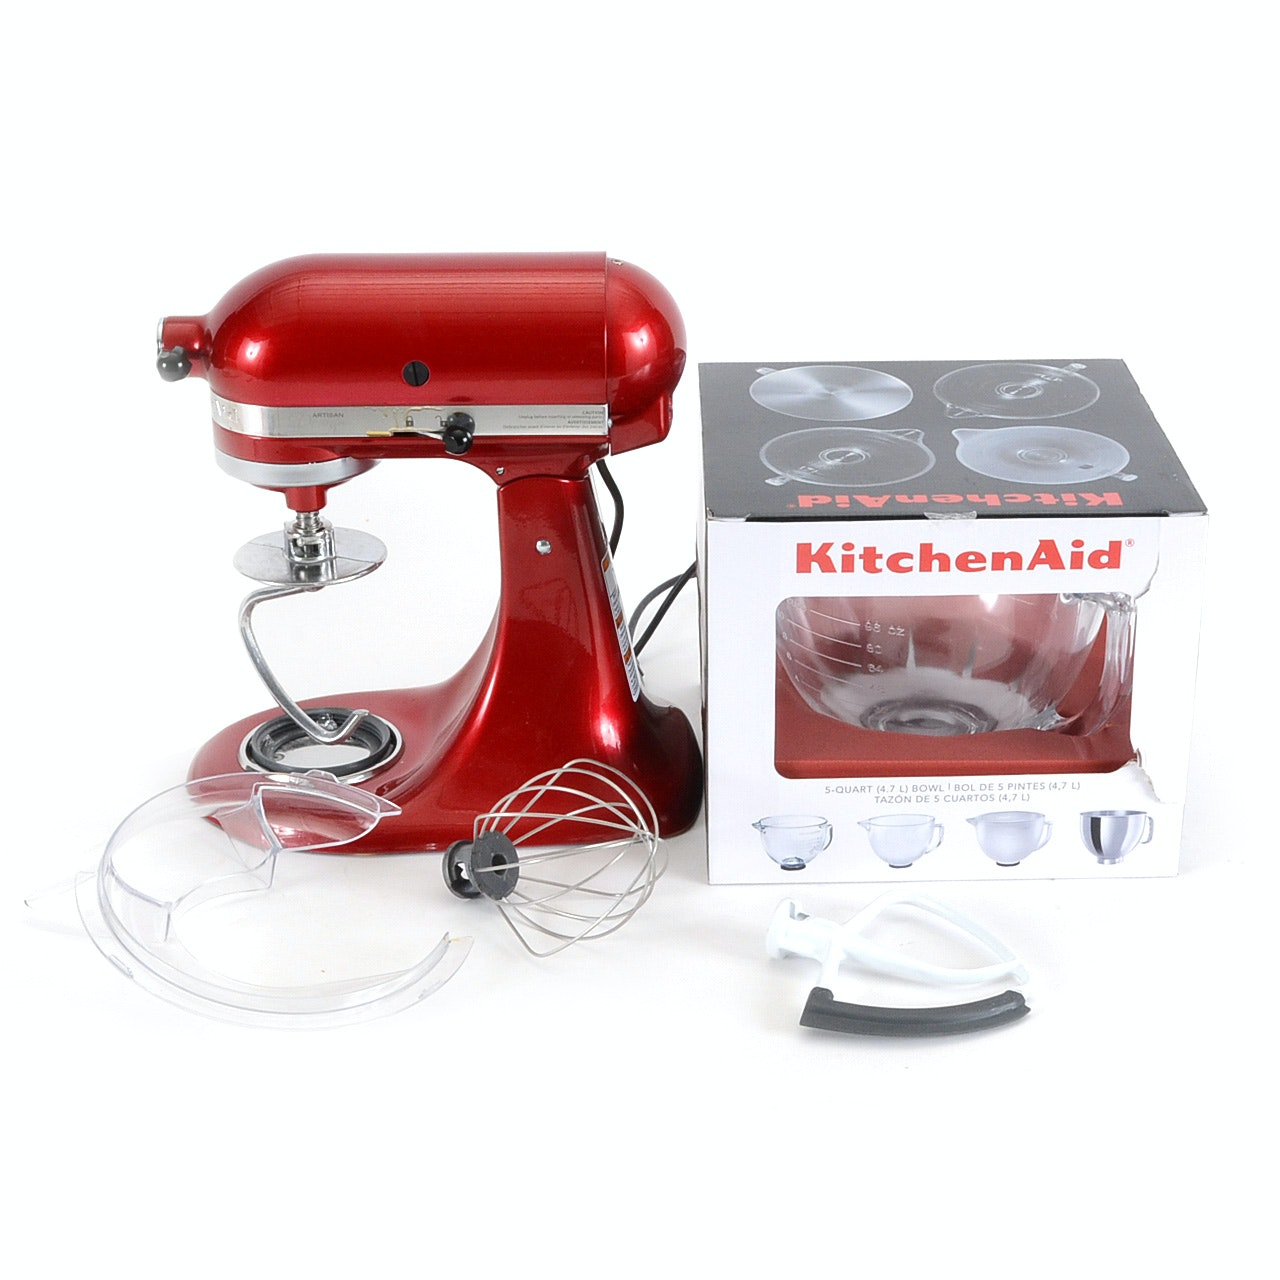 "Kitchen-Aid ""Artisan"" Mixer with Accessories"